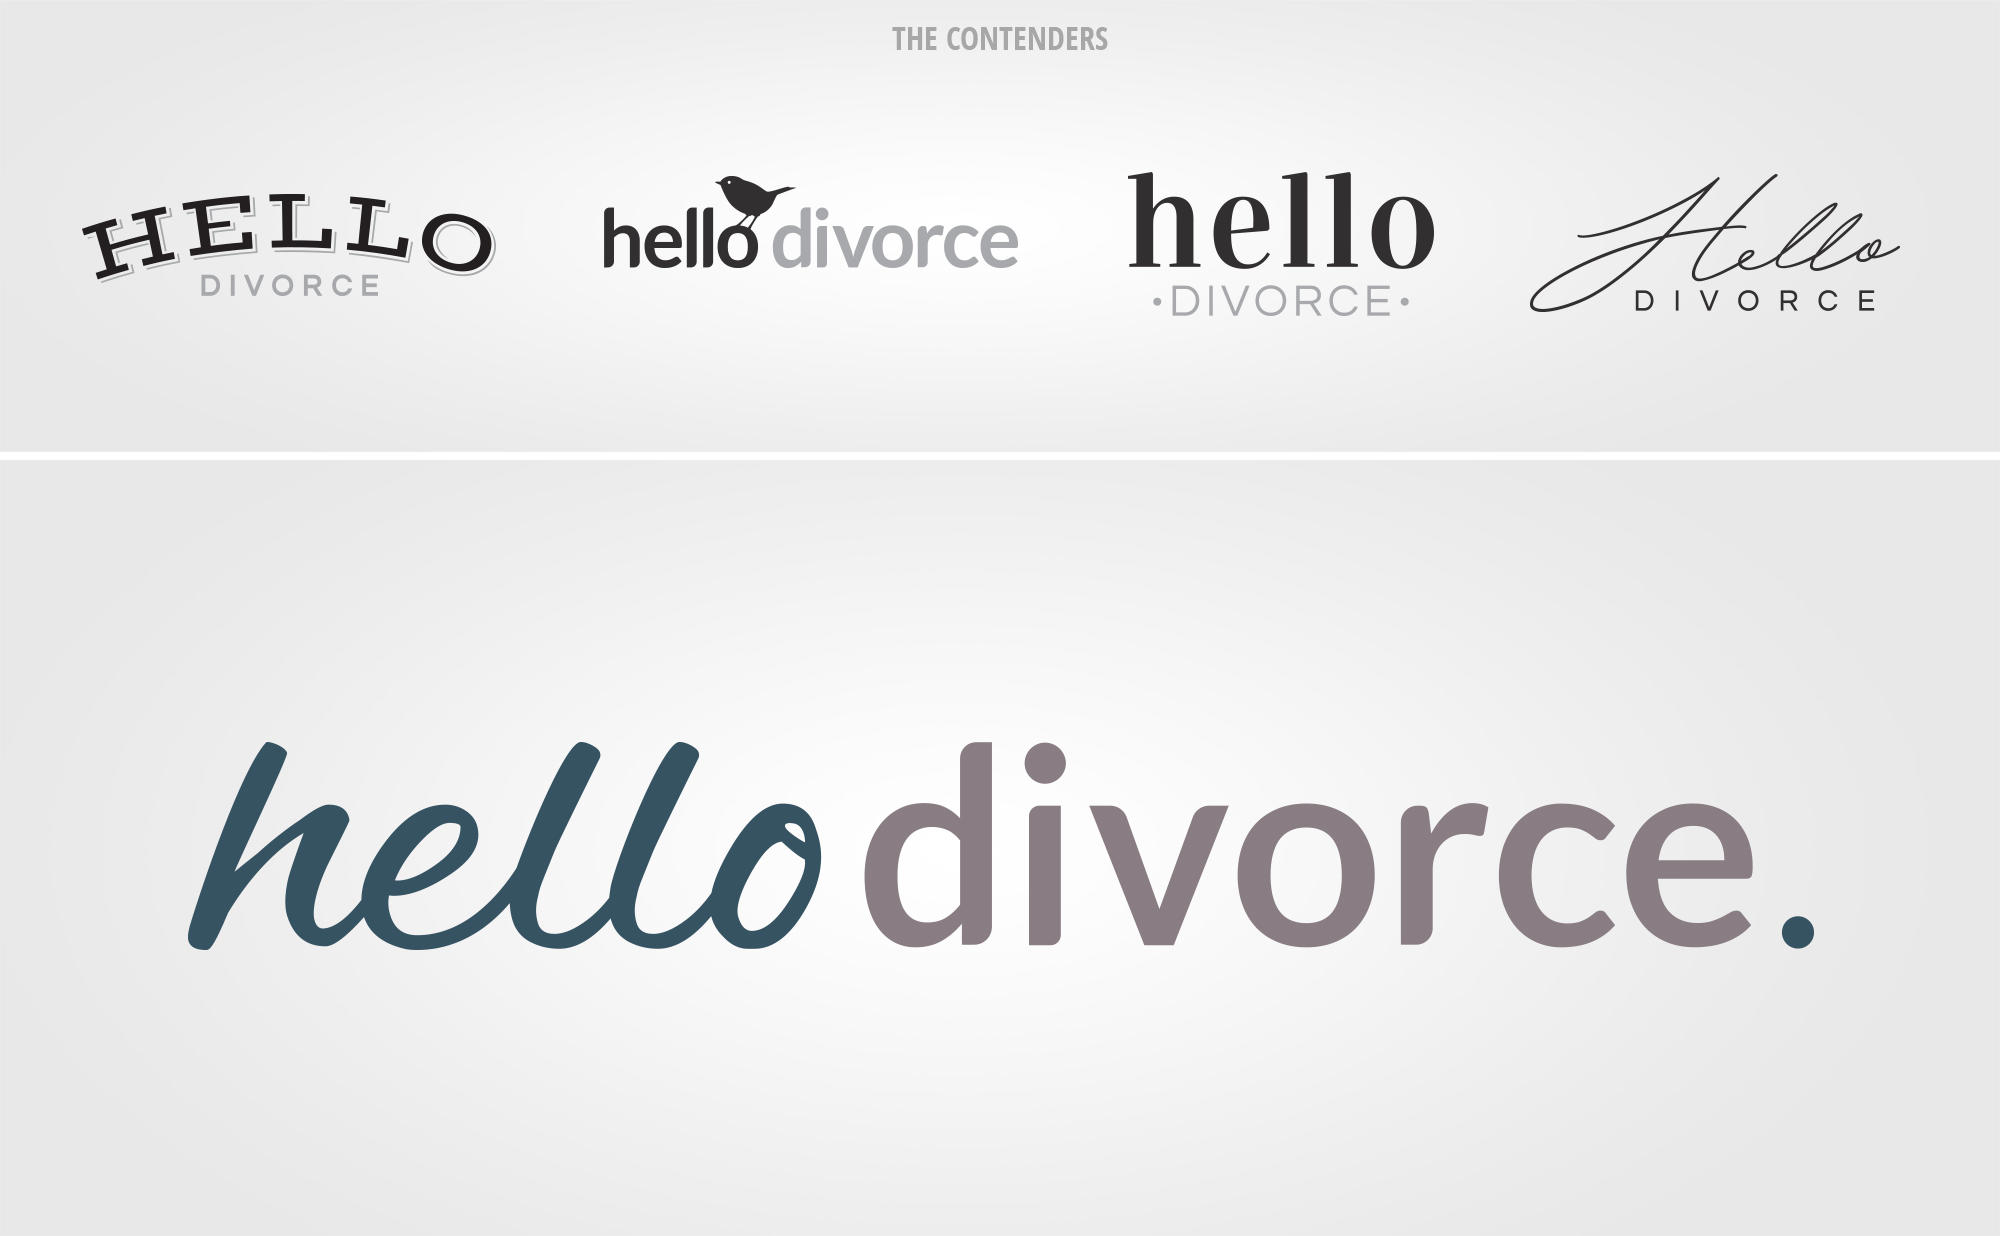 The various options and winning logo we created for Hello Divorce